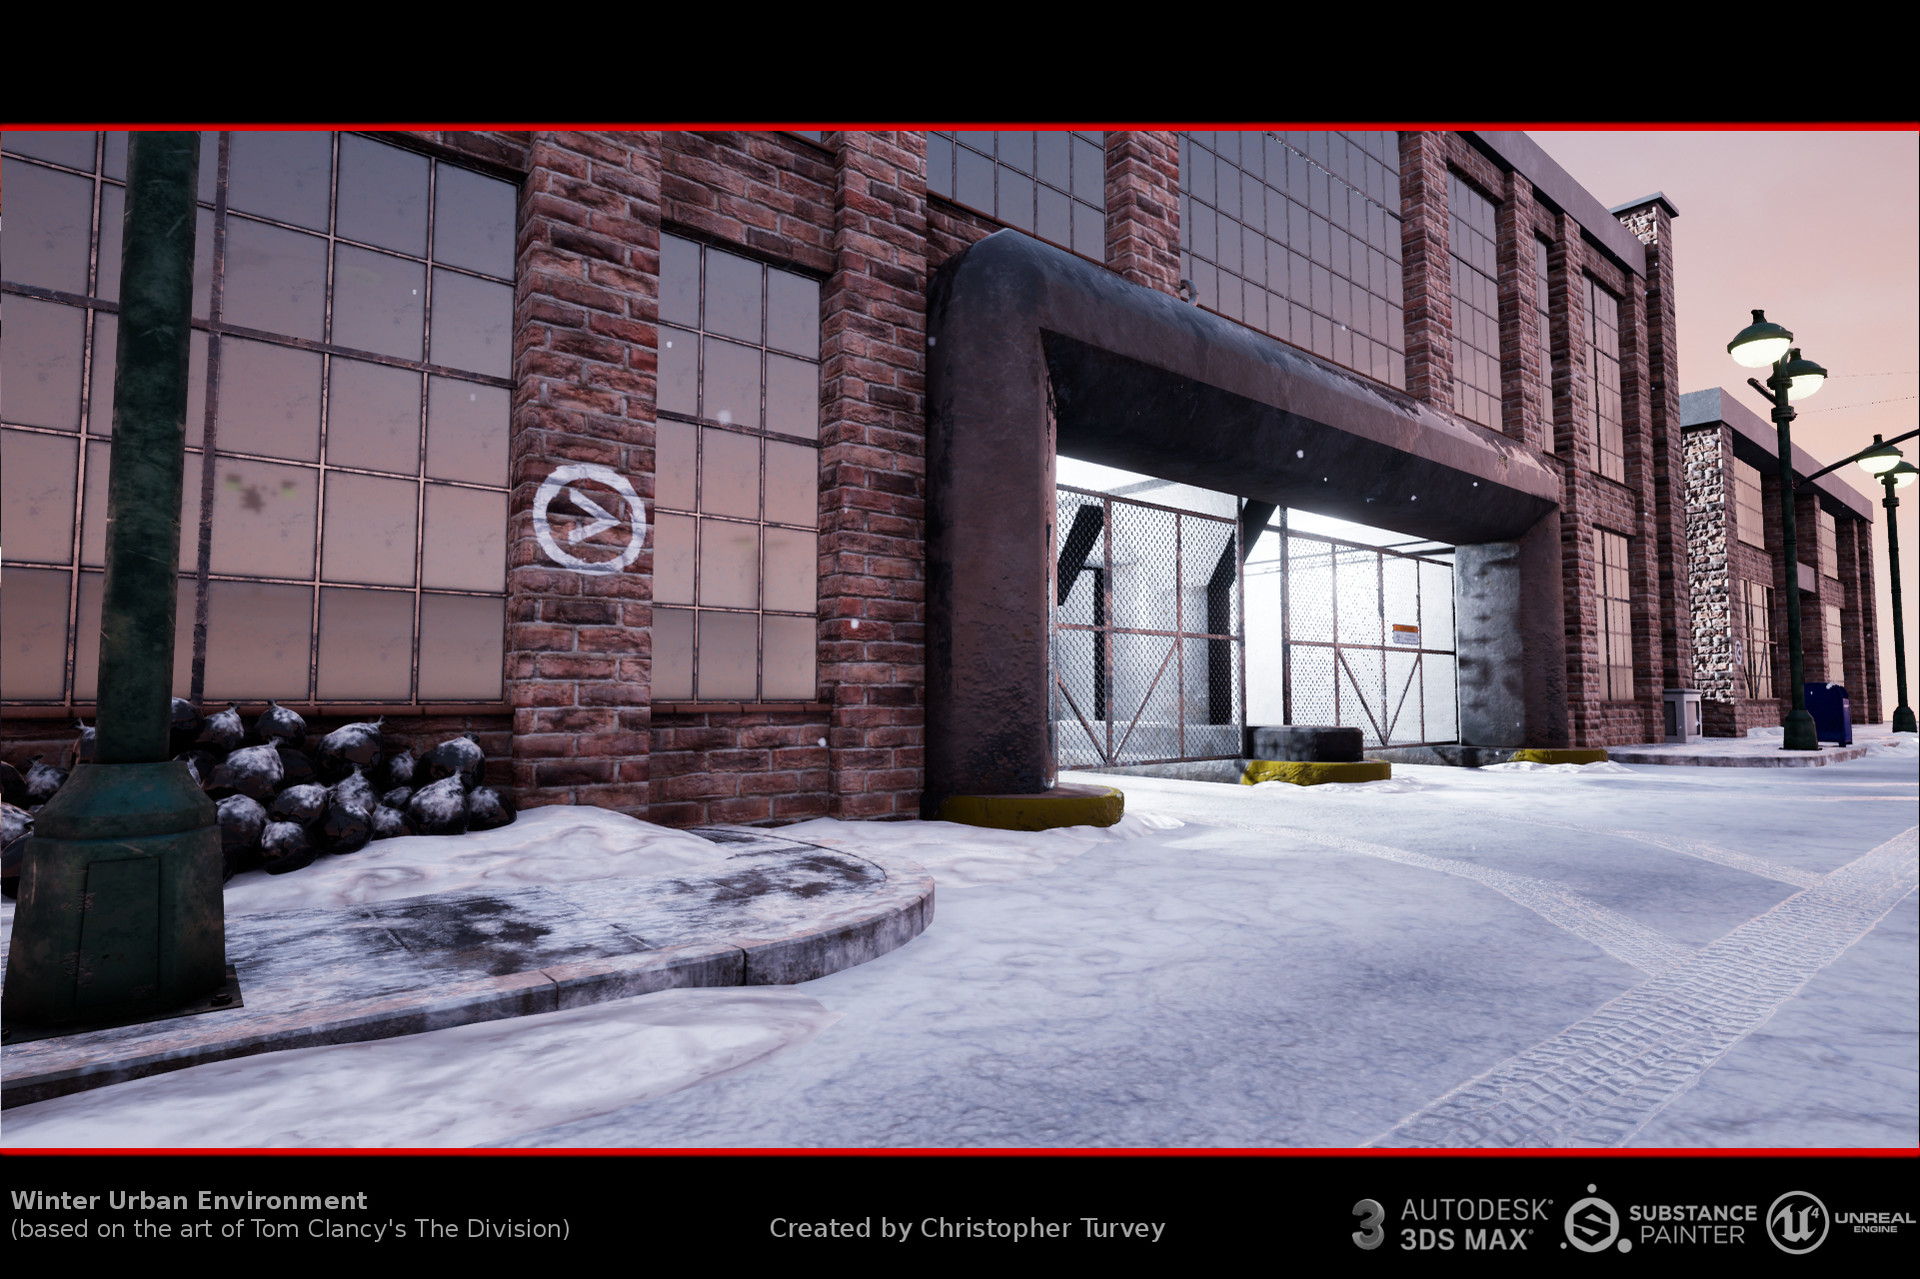 ArtStation - Winter urban environment at sunset (inspired by